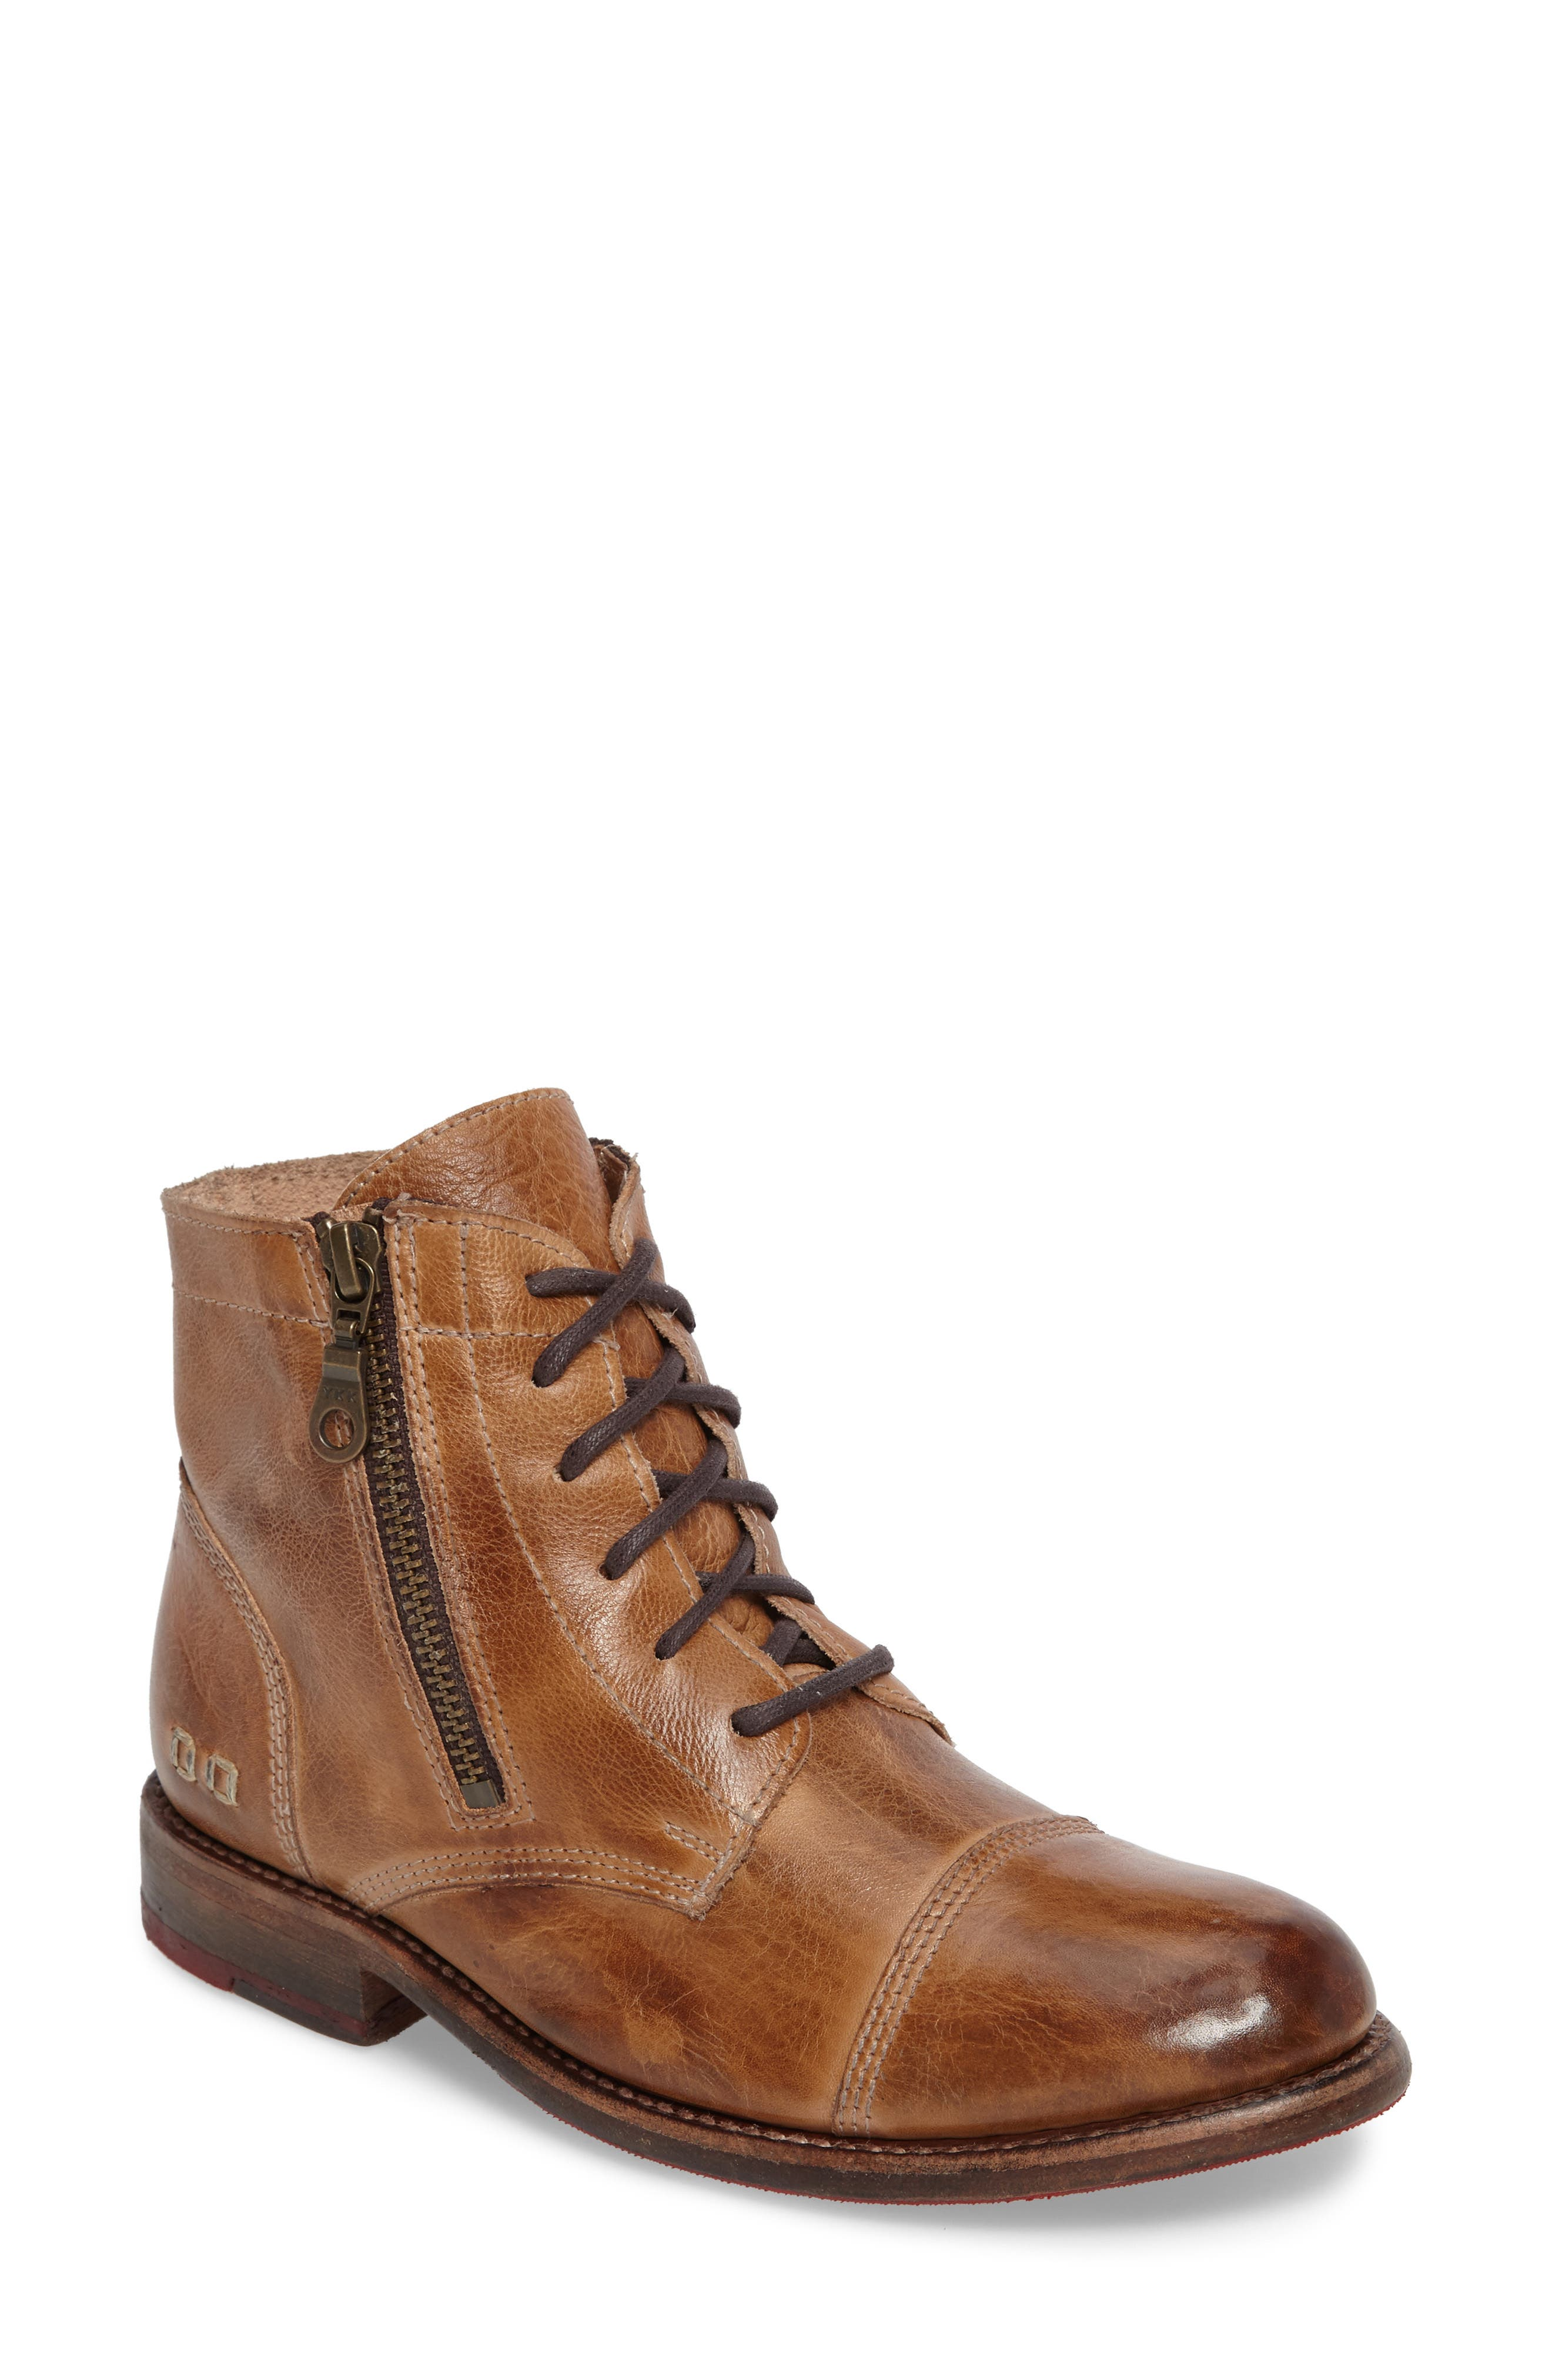 'Bonnie' Boot,                         Main,                         color, Tan Rustic Leather